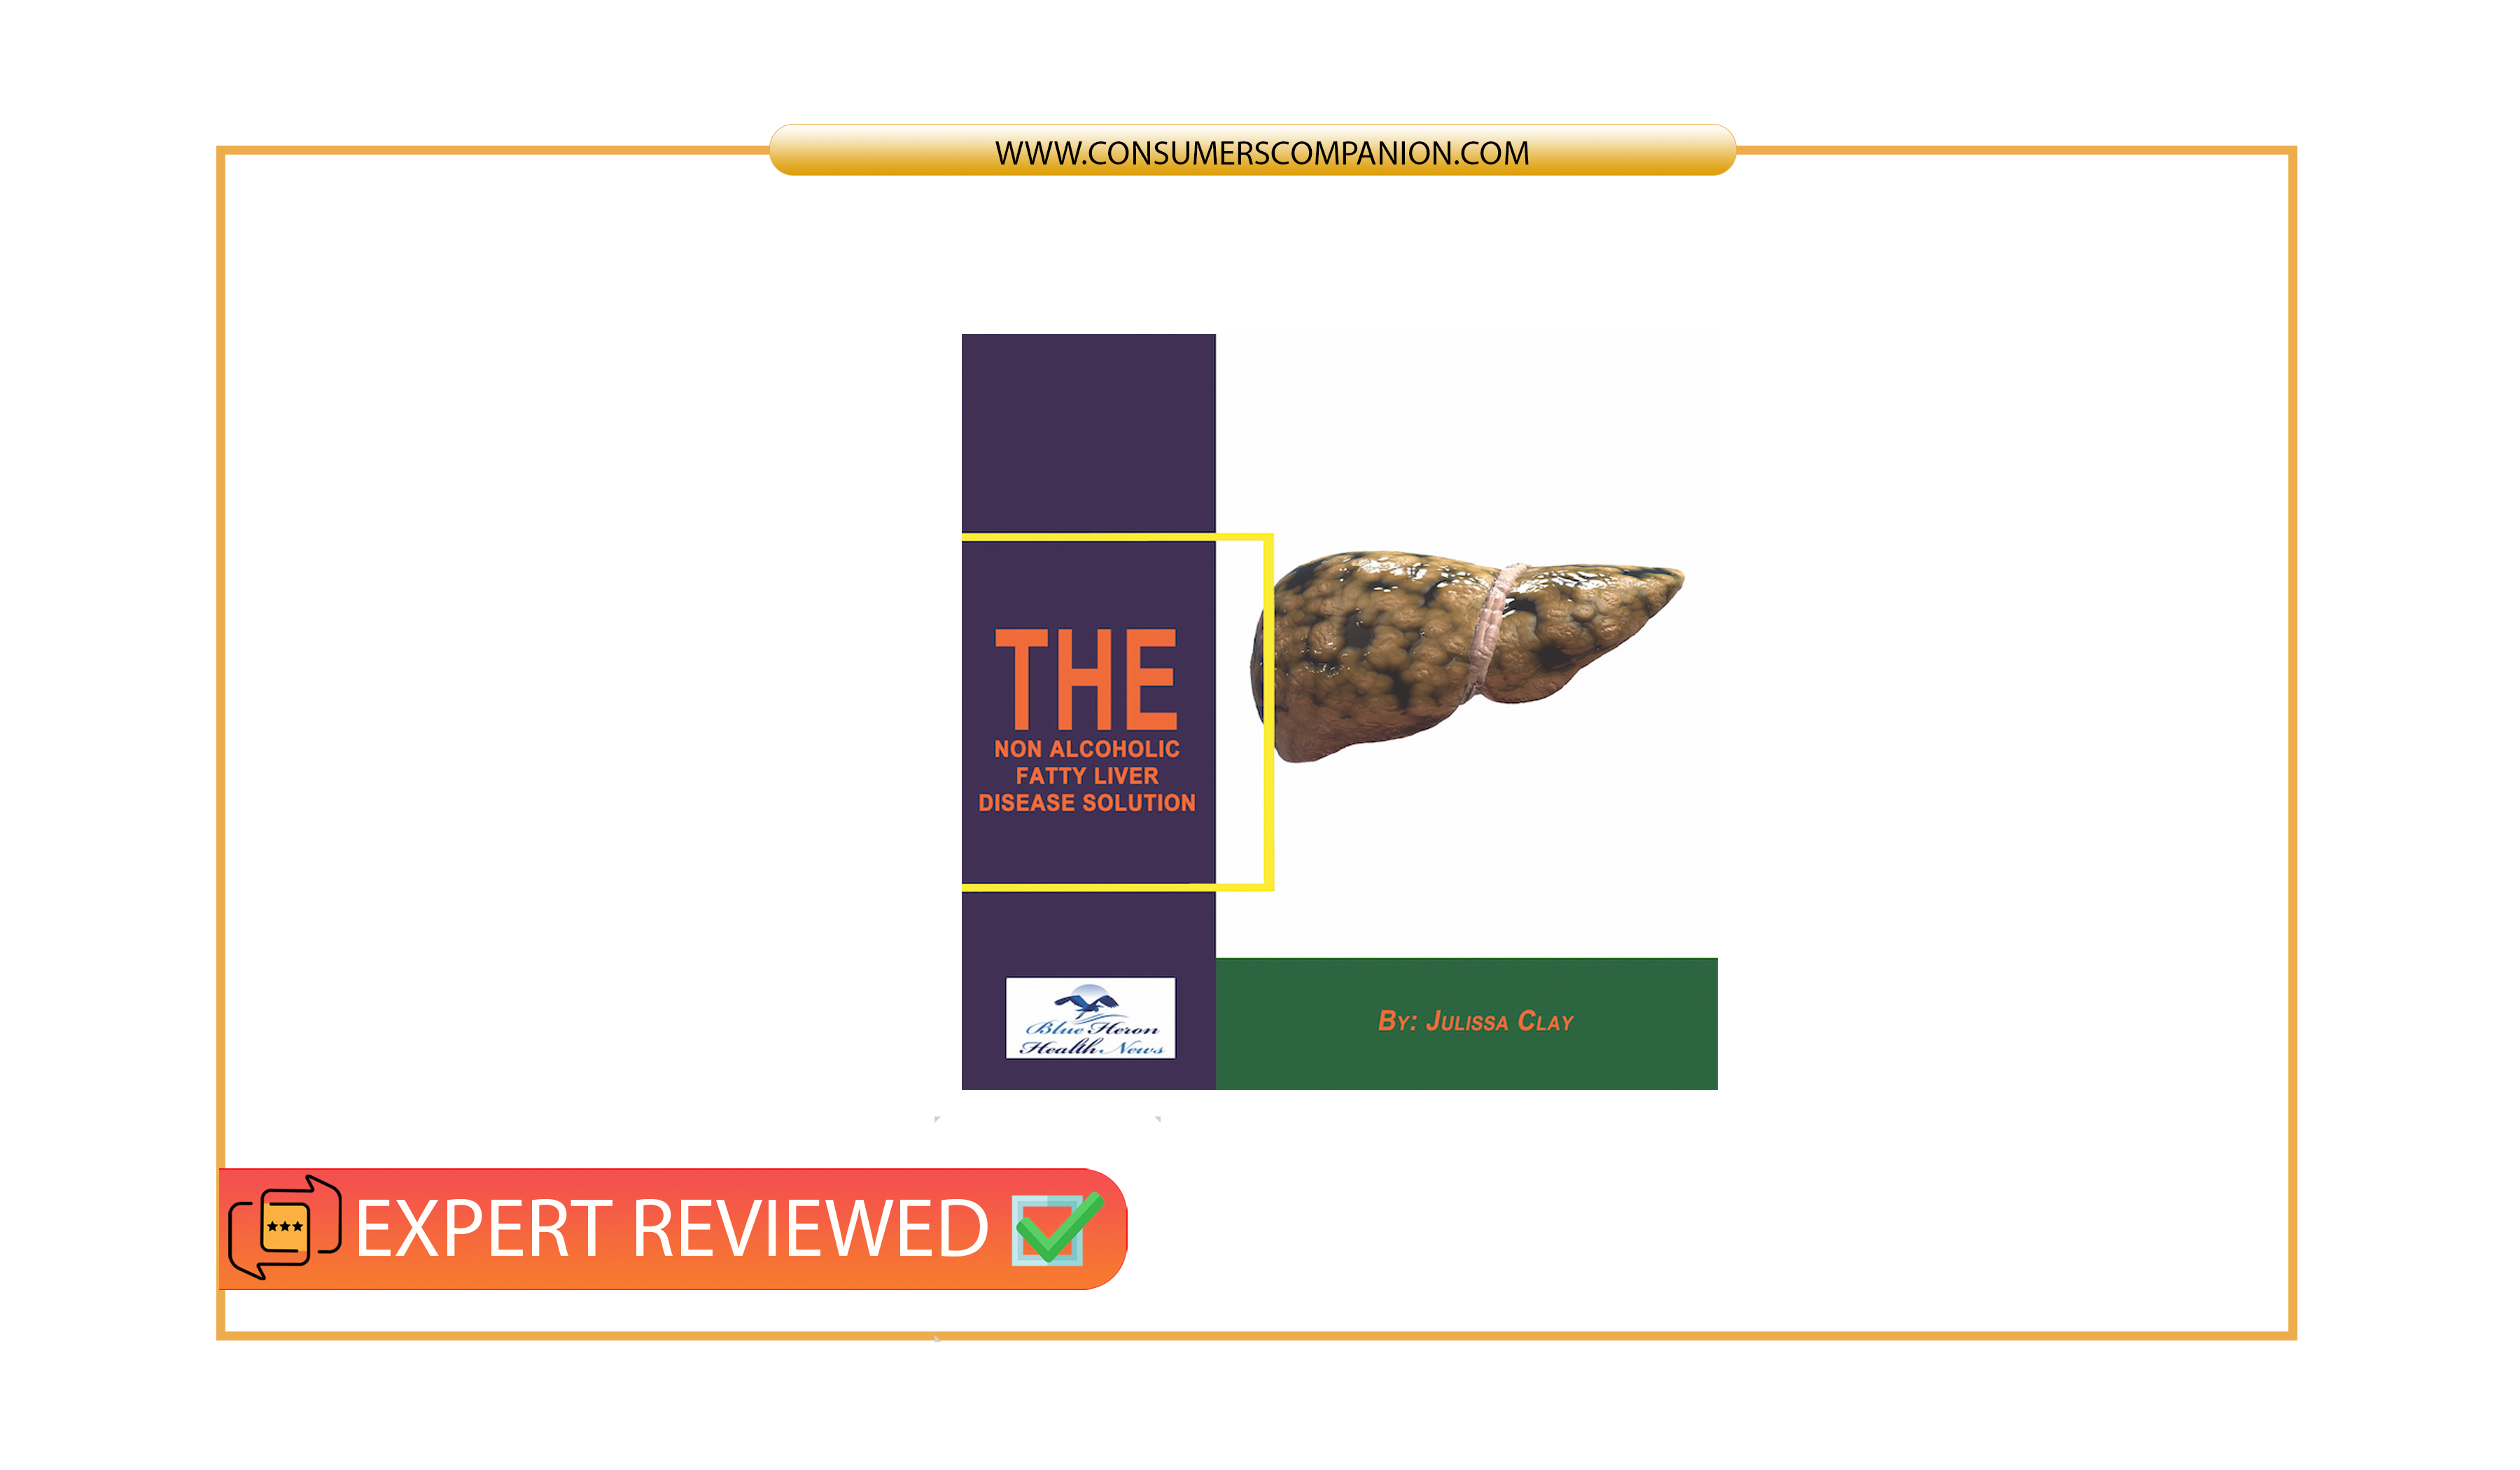 The Non Alcoholic Fatty Liver Disease Solution Review